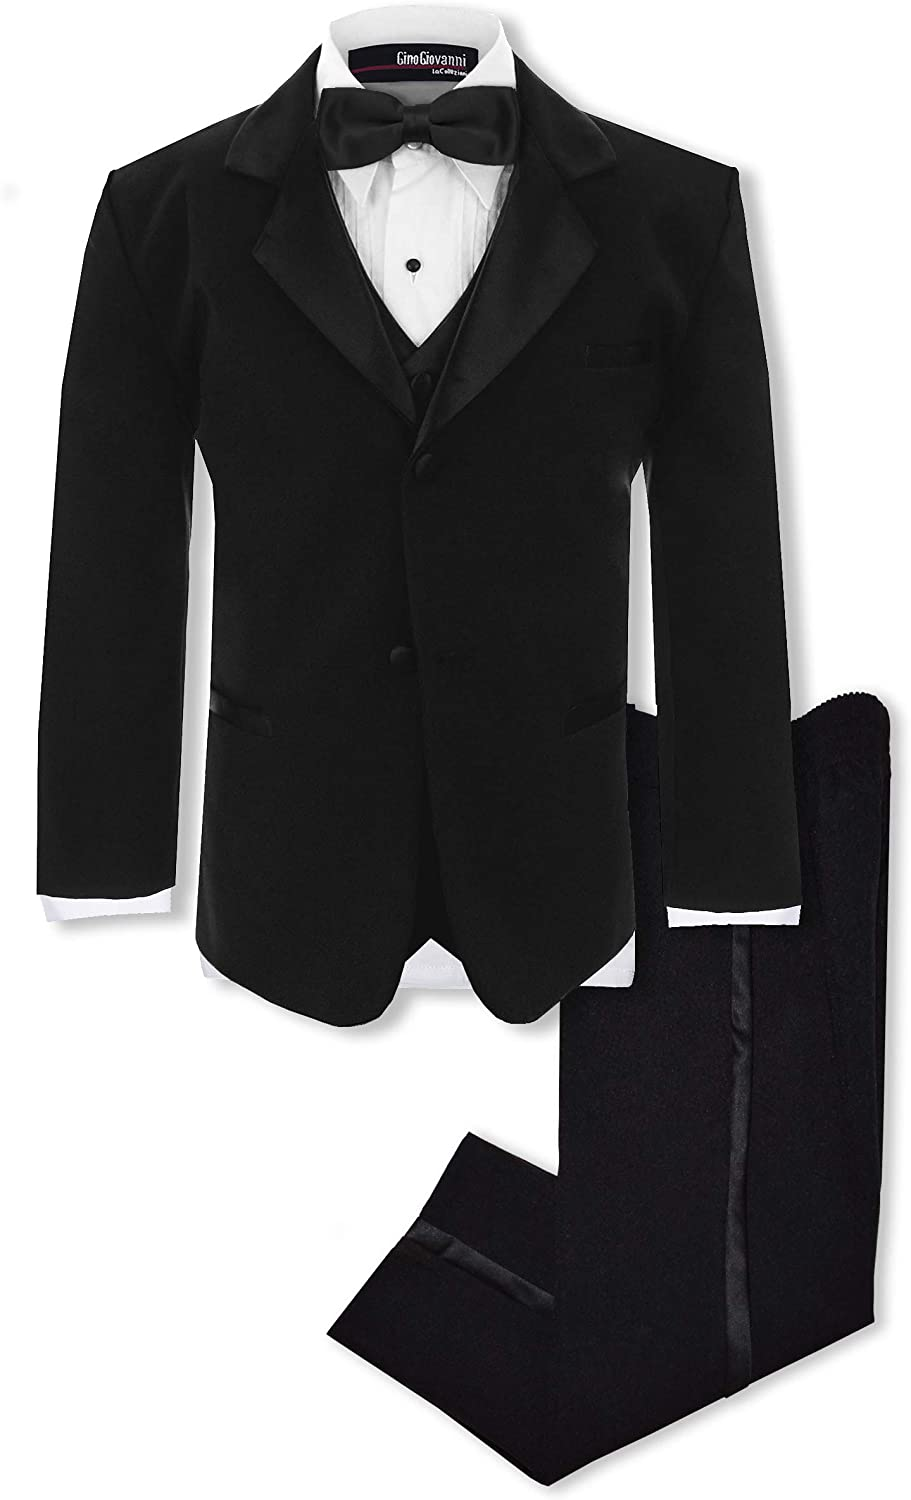 Quality inspection Gino Giovanni Boys Formal Complete Set Tuxedo Now on sale Suit